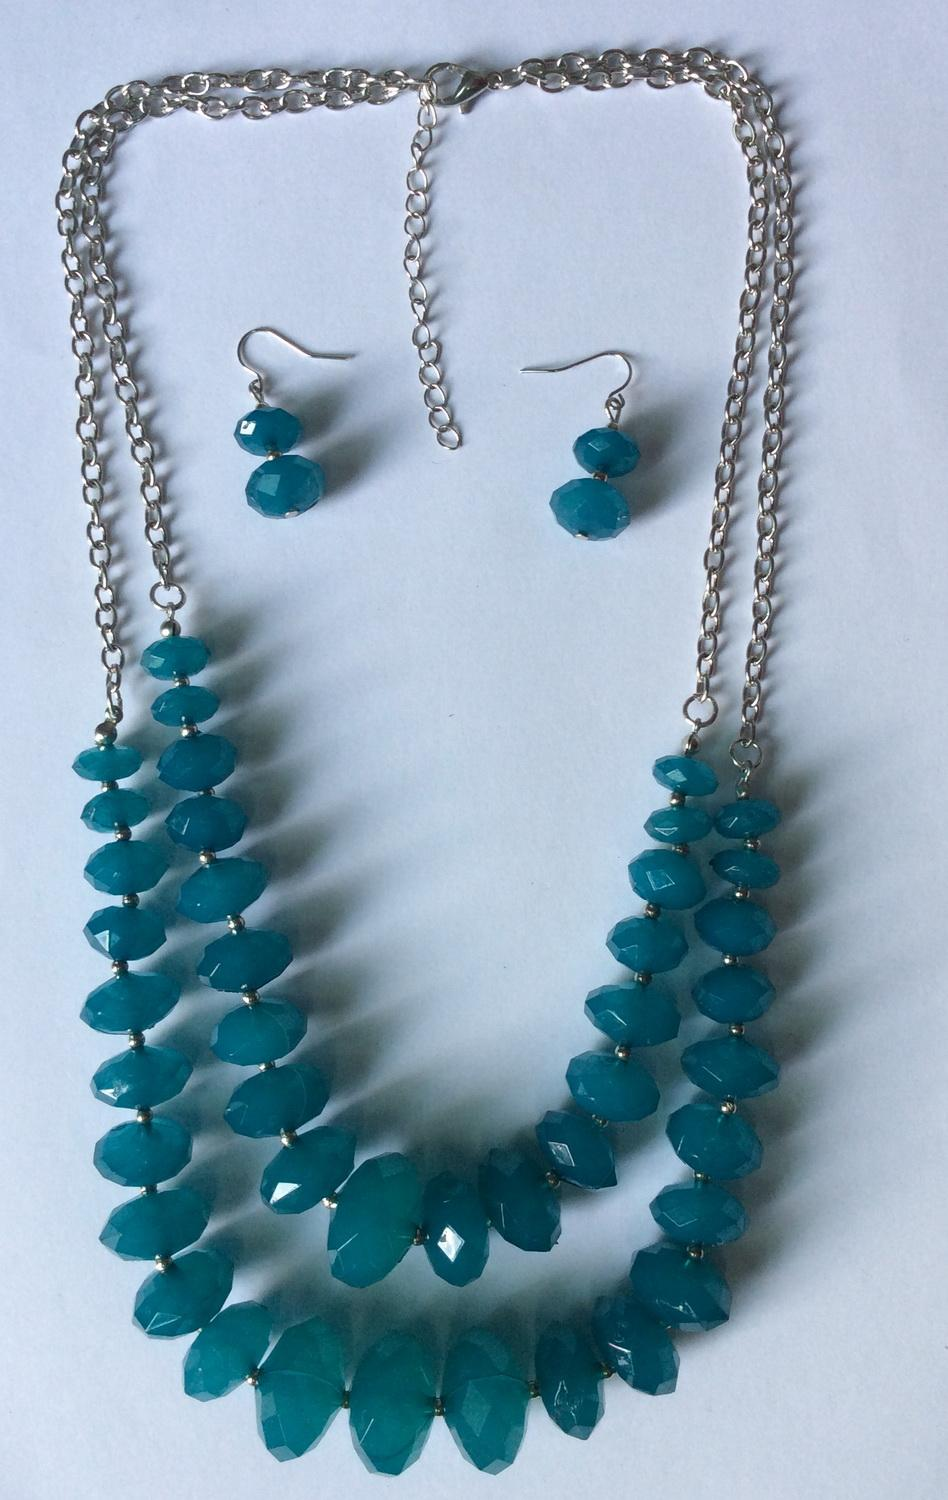 New two rows faceted milky acrylic beads necklace and earring set